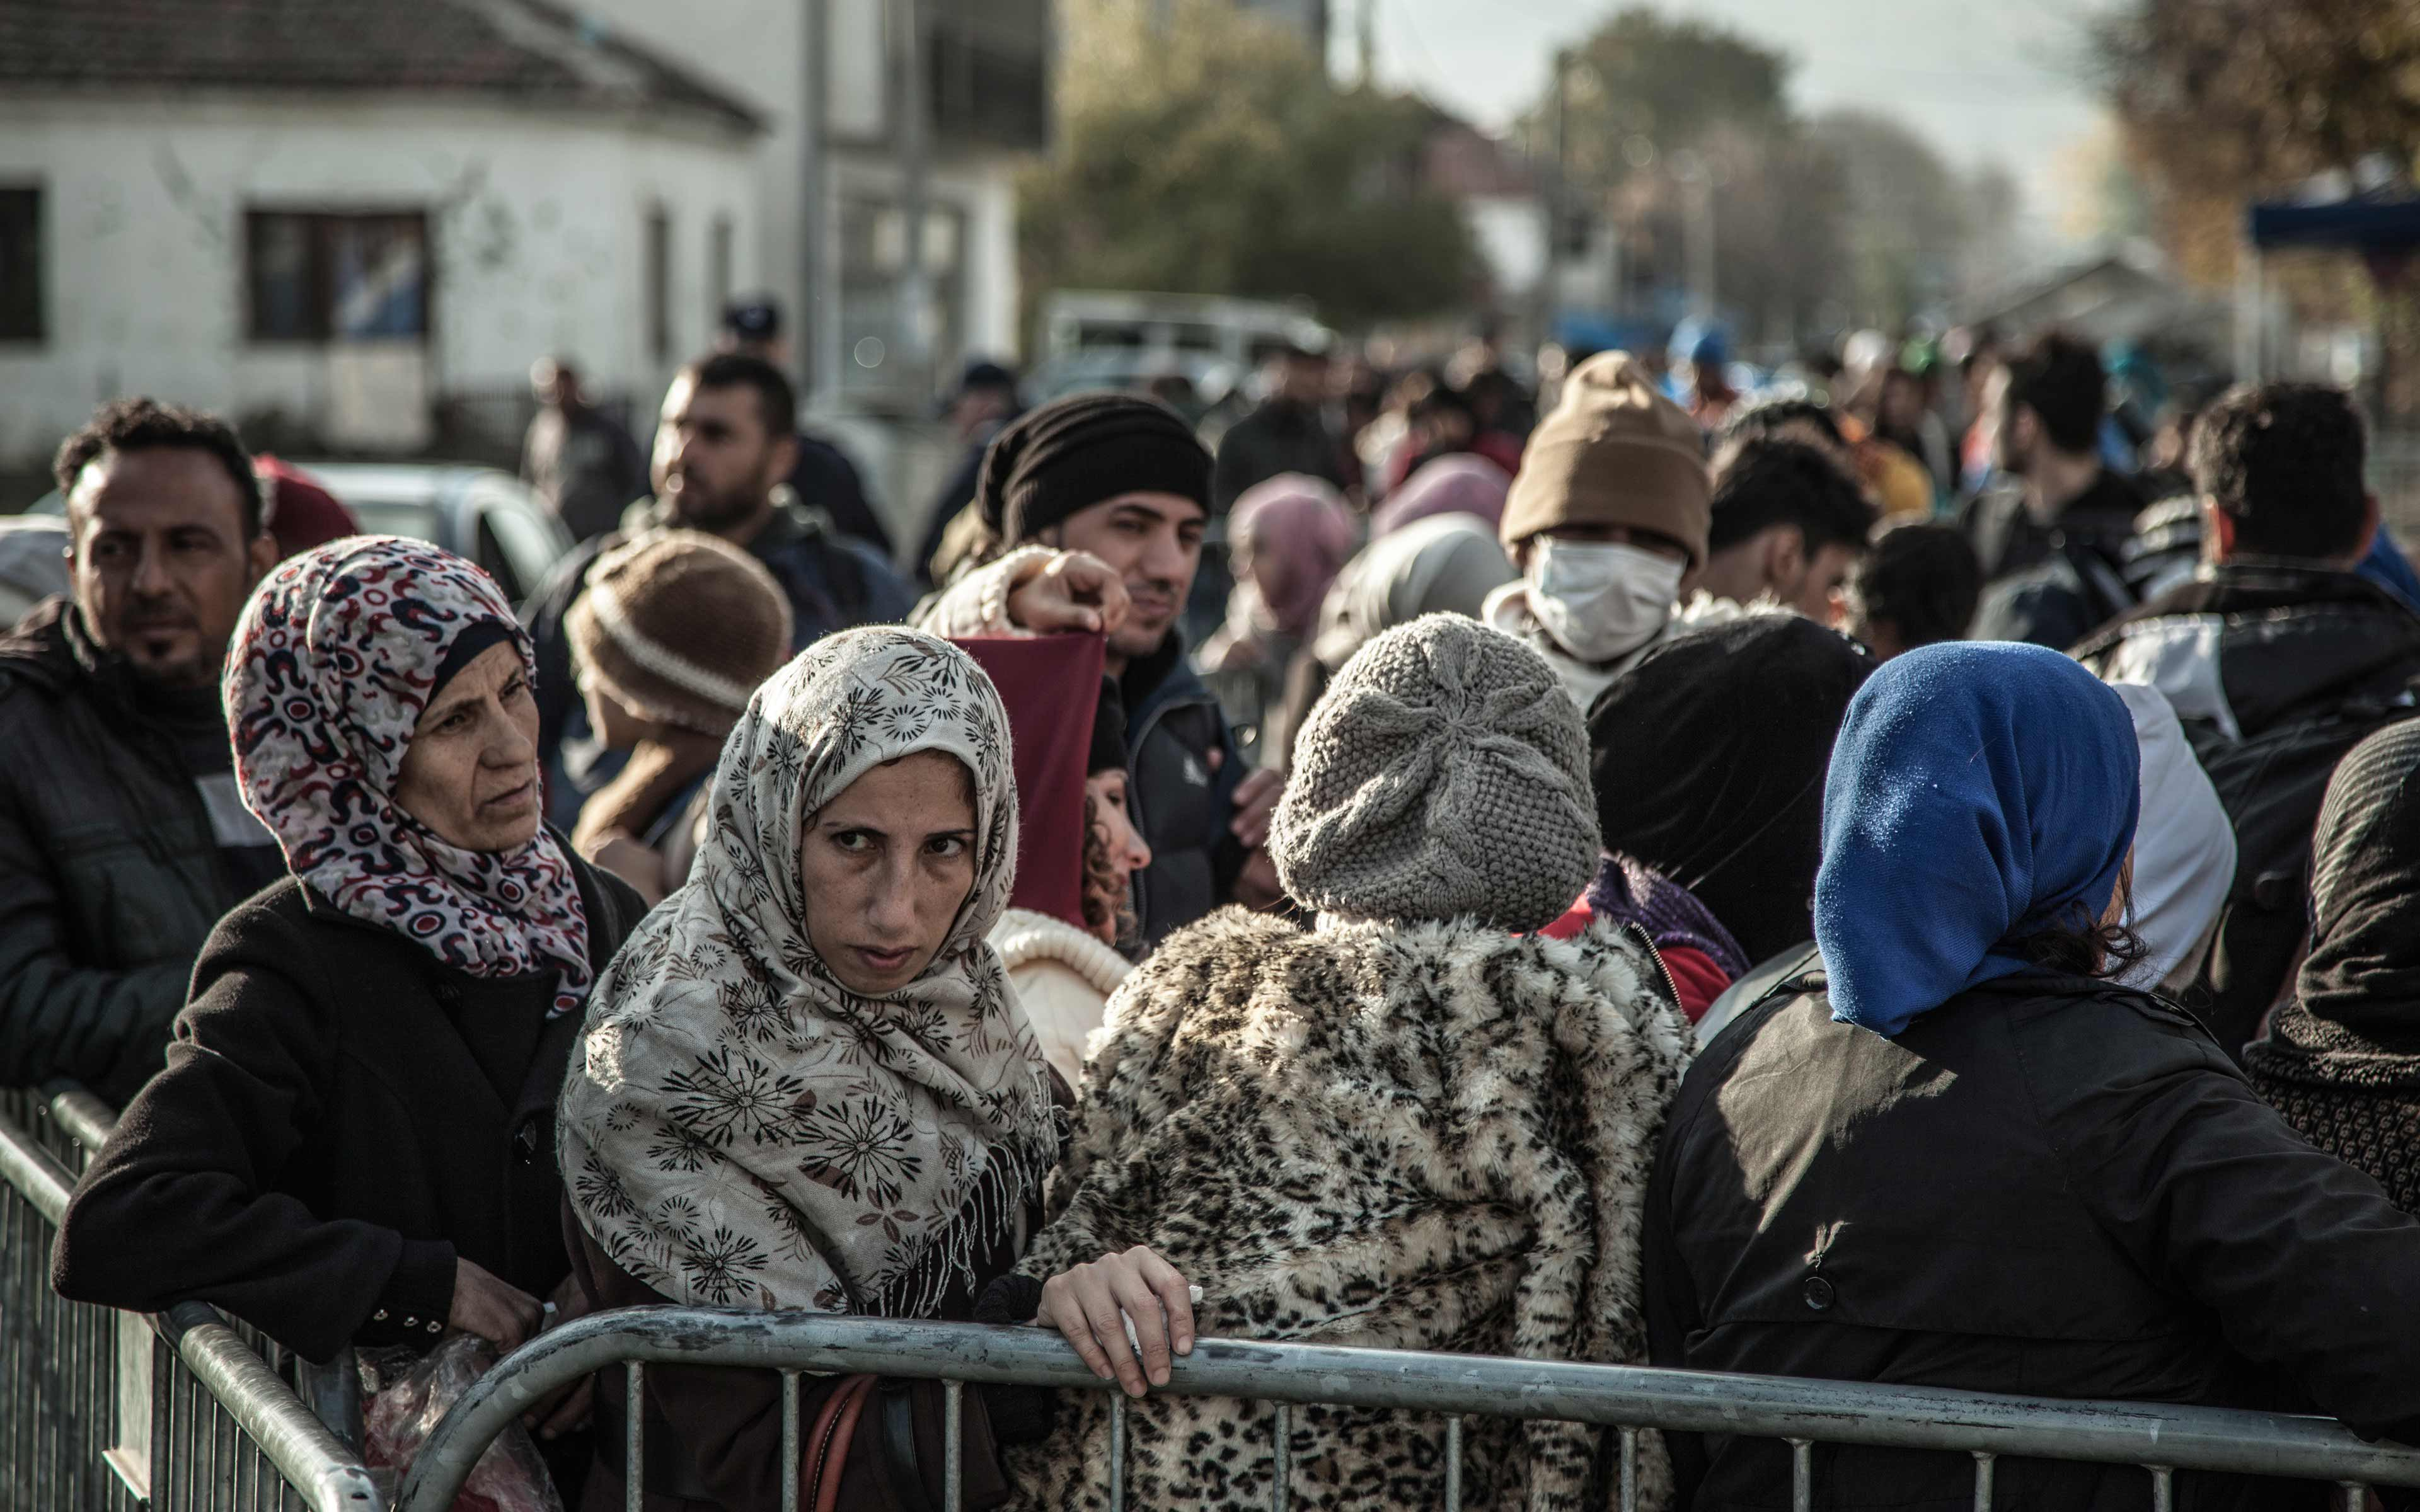 In November, 2015, many refugees were passing through Presevo in southern Serbia and then heading northwest toward Sid, often on buses or trains, before crossing the border into Croatia.